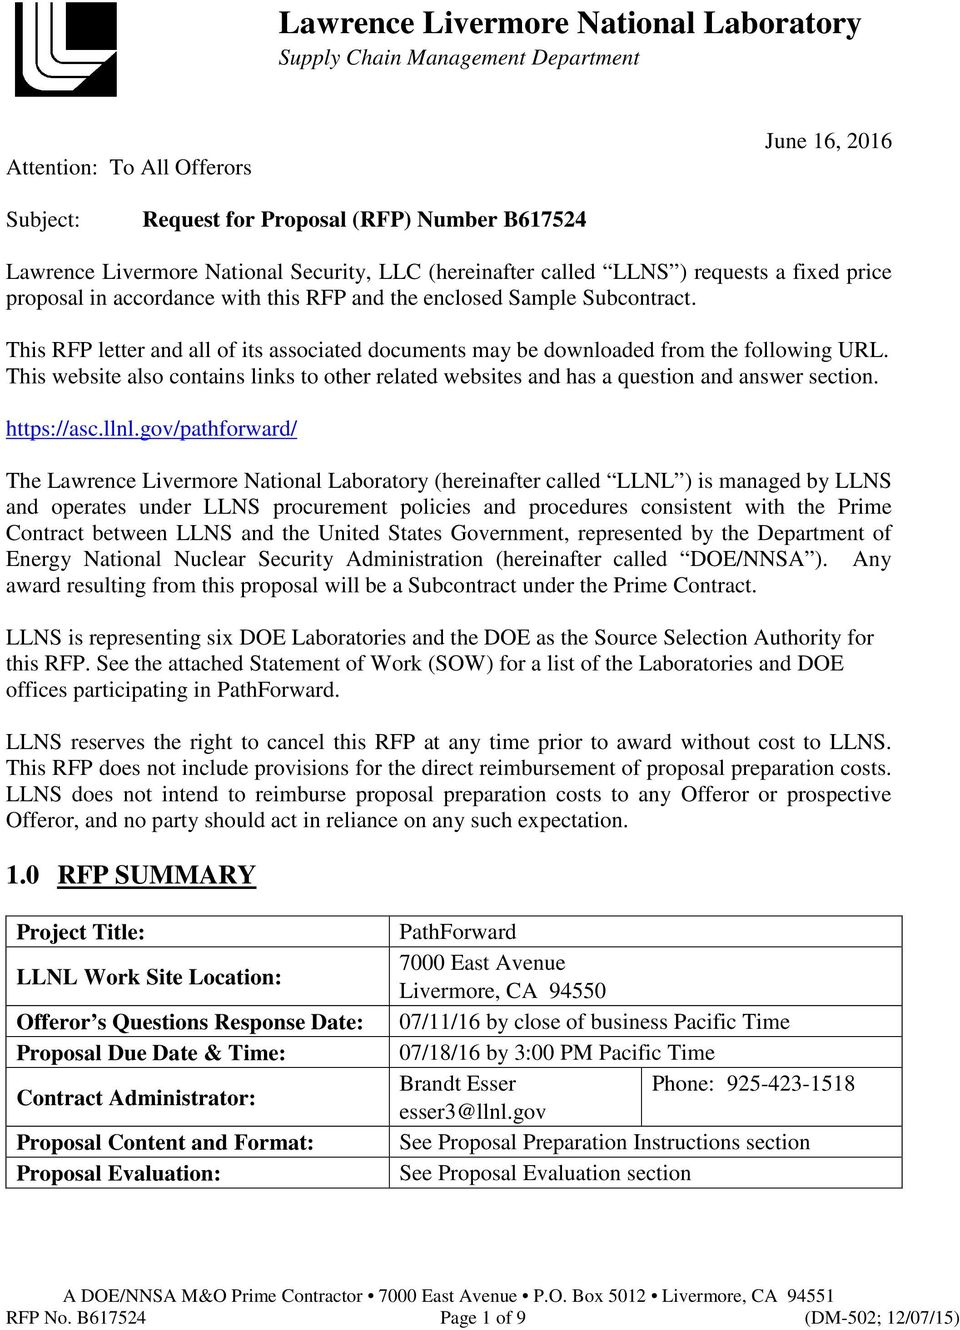 This RFP letter and all of its associated documents may be downloaded from the following URL. This website also contains links to other related websites and has a question and answer section.